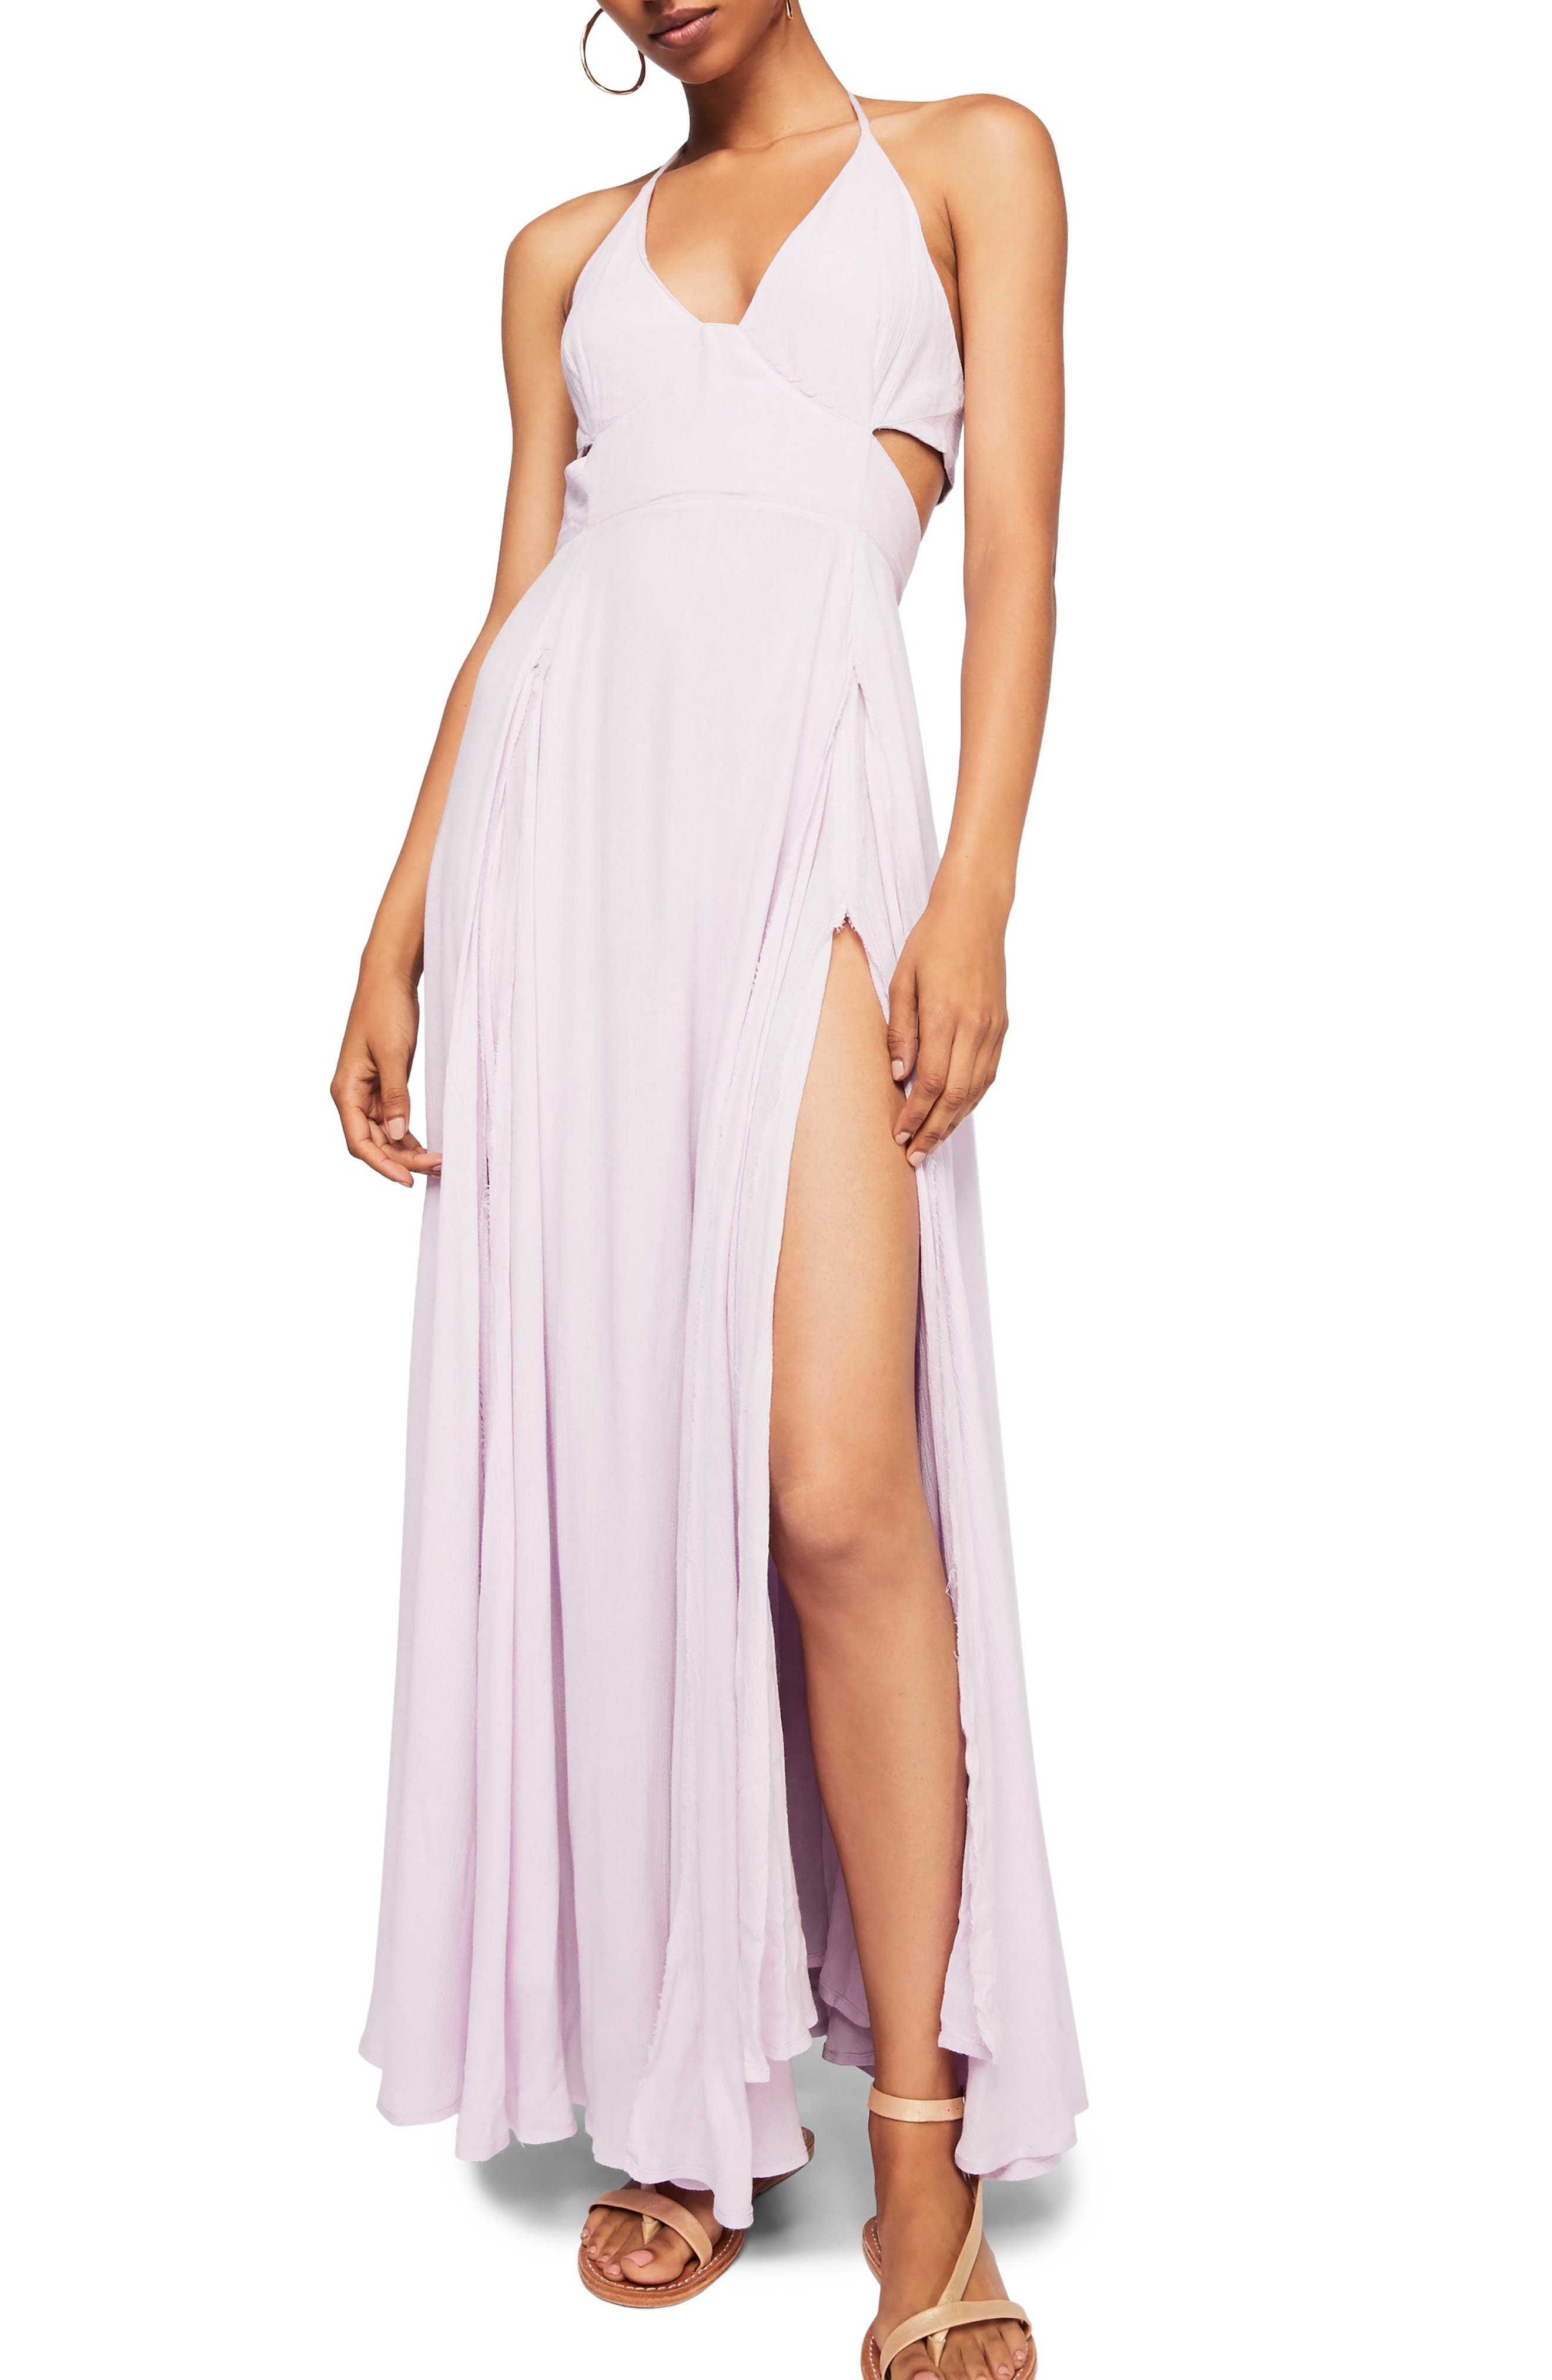 Endless Summer by Free People Lillie Maxi Dress,                             Main thumbnail 1, color,                             535